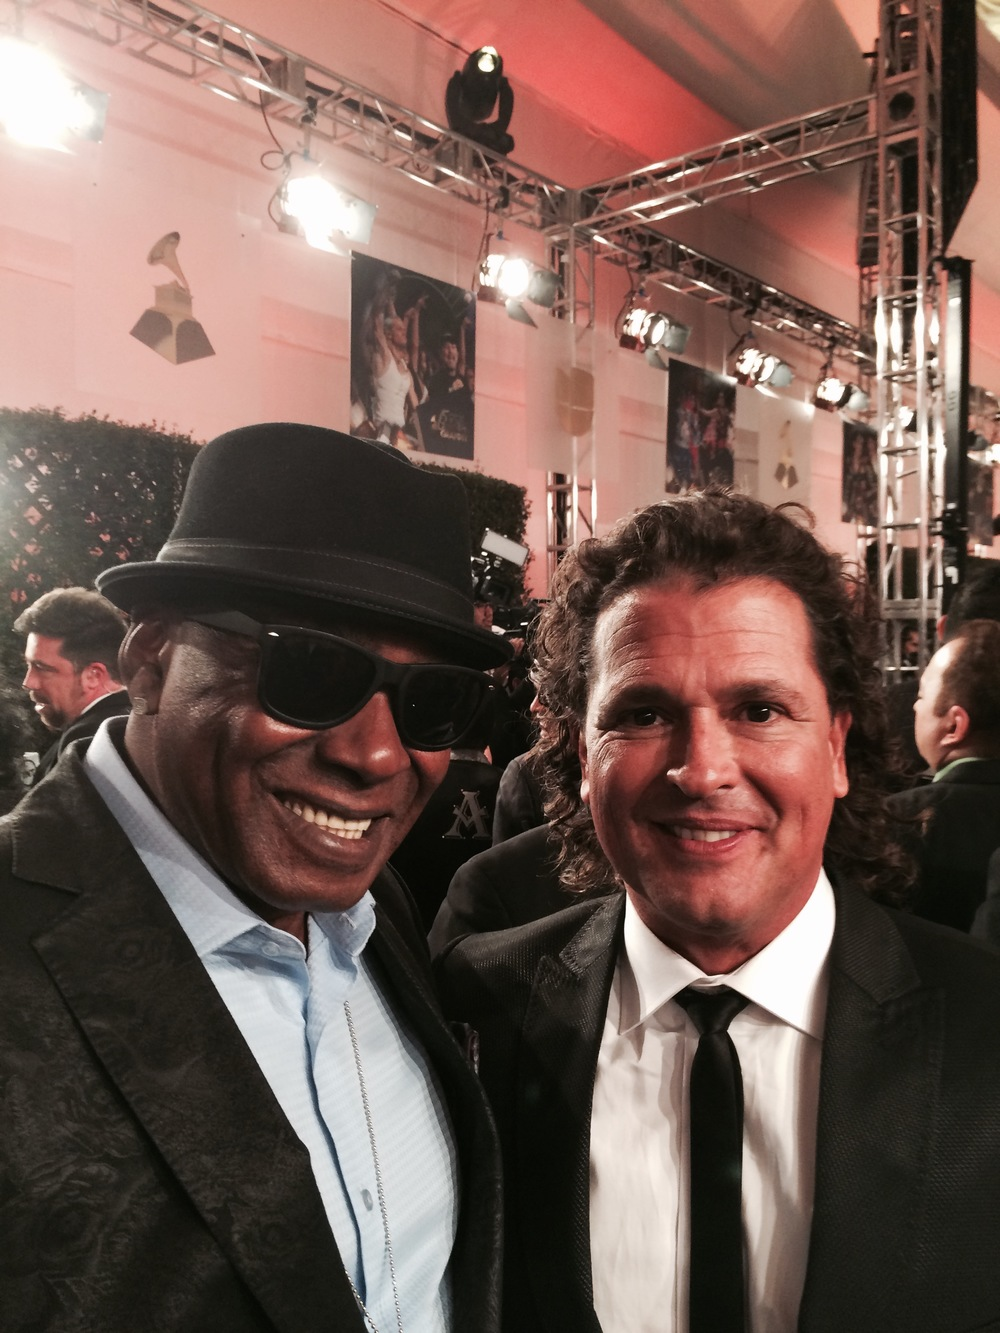 TD With Carlos Vives Latin Grammy's 2014.jpeg